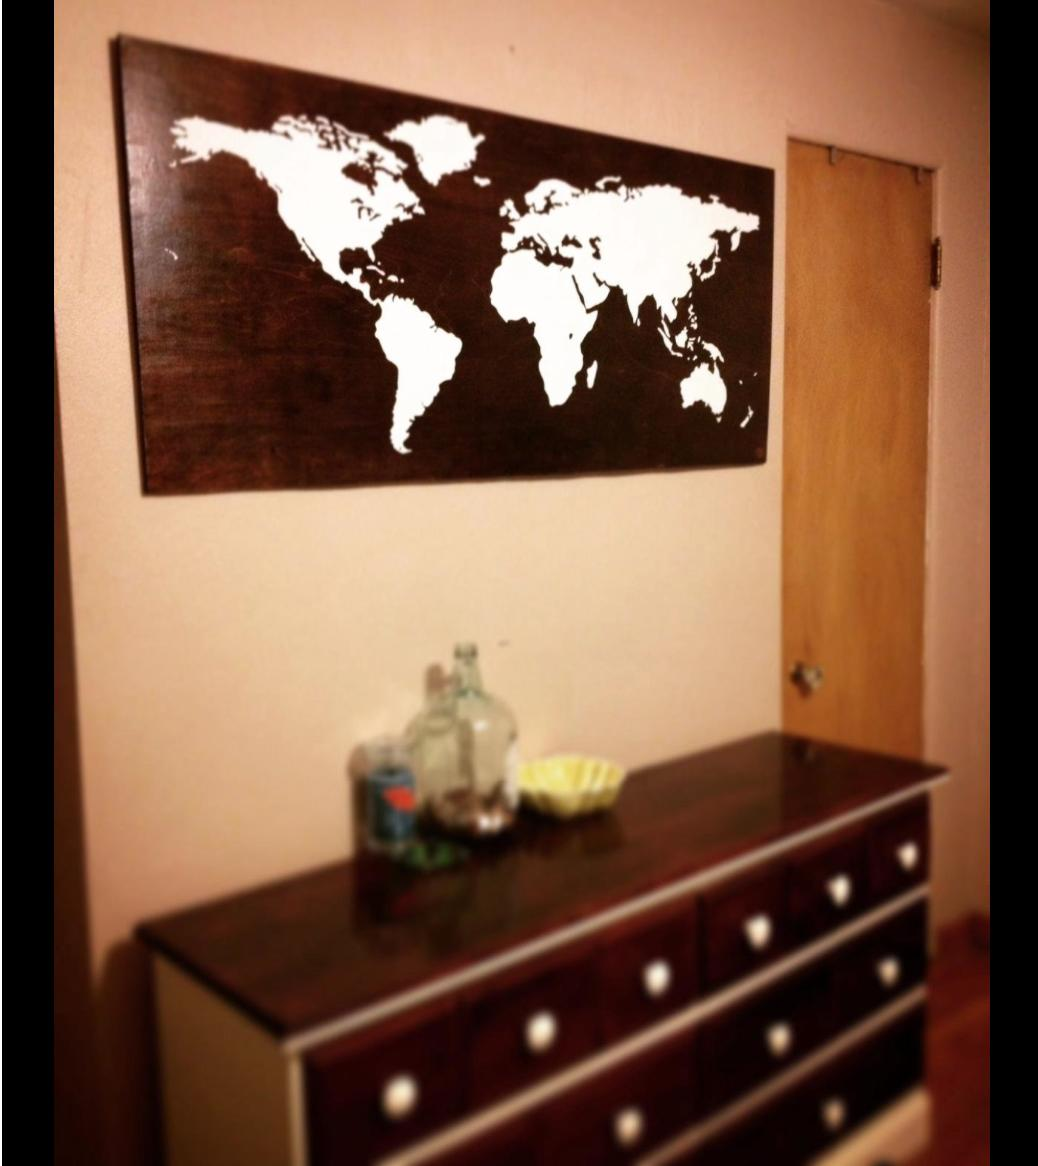 Vinyl Wall Art Decal Sticker World Map from StickerBrand